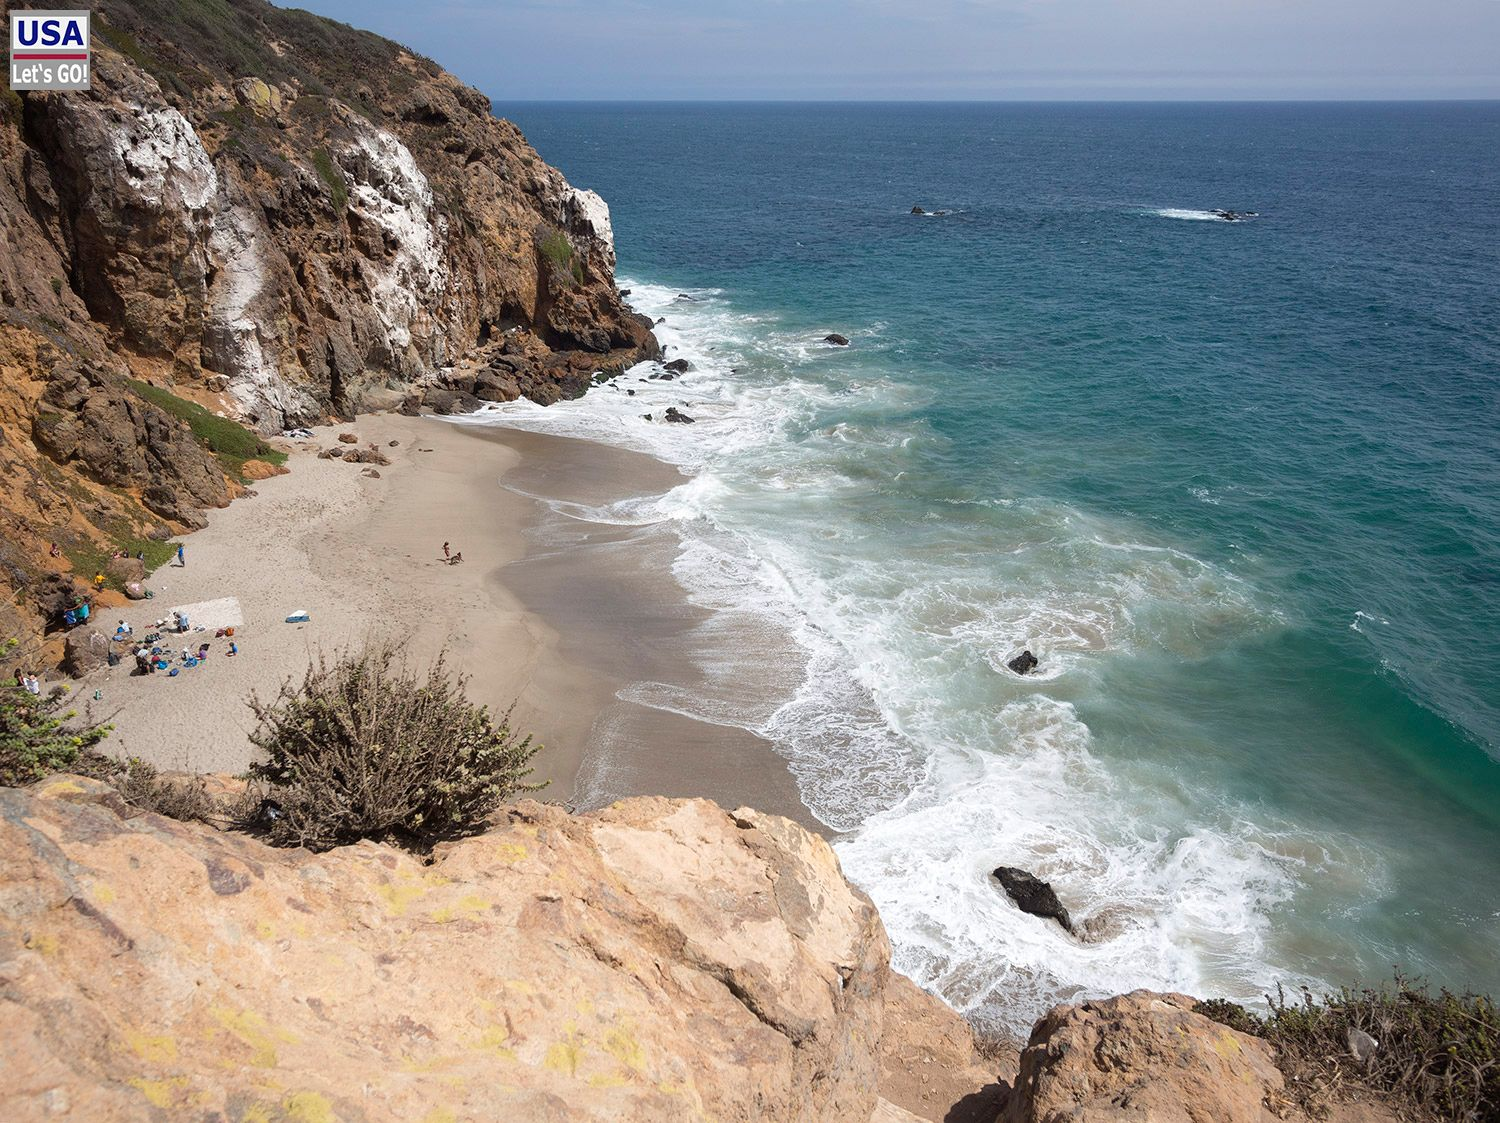 Pirates Cove Point Dume State Park